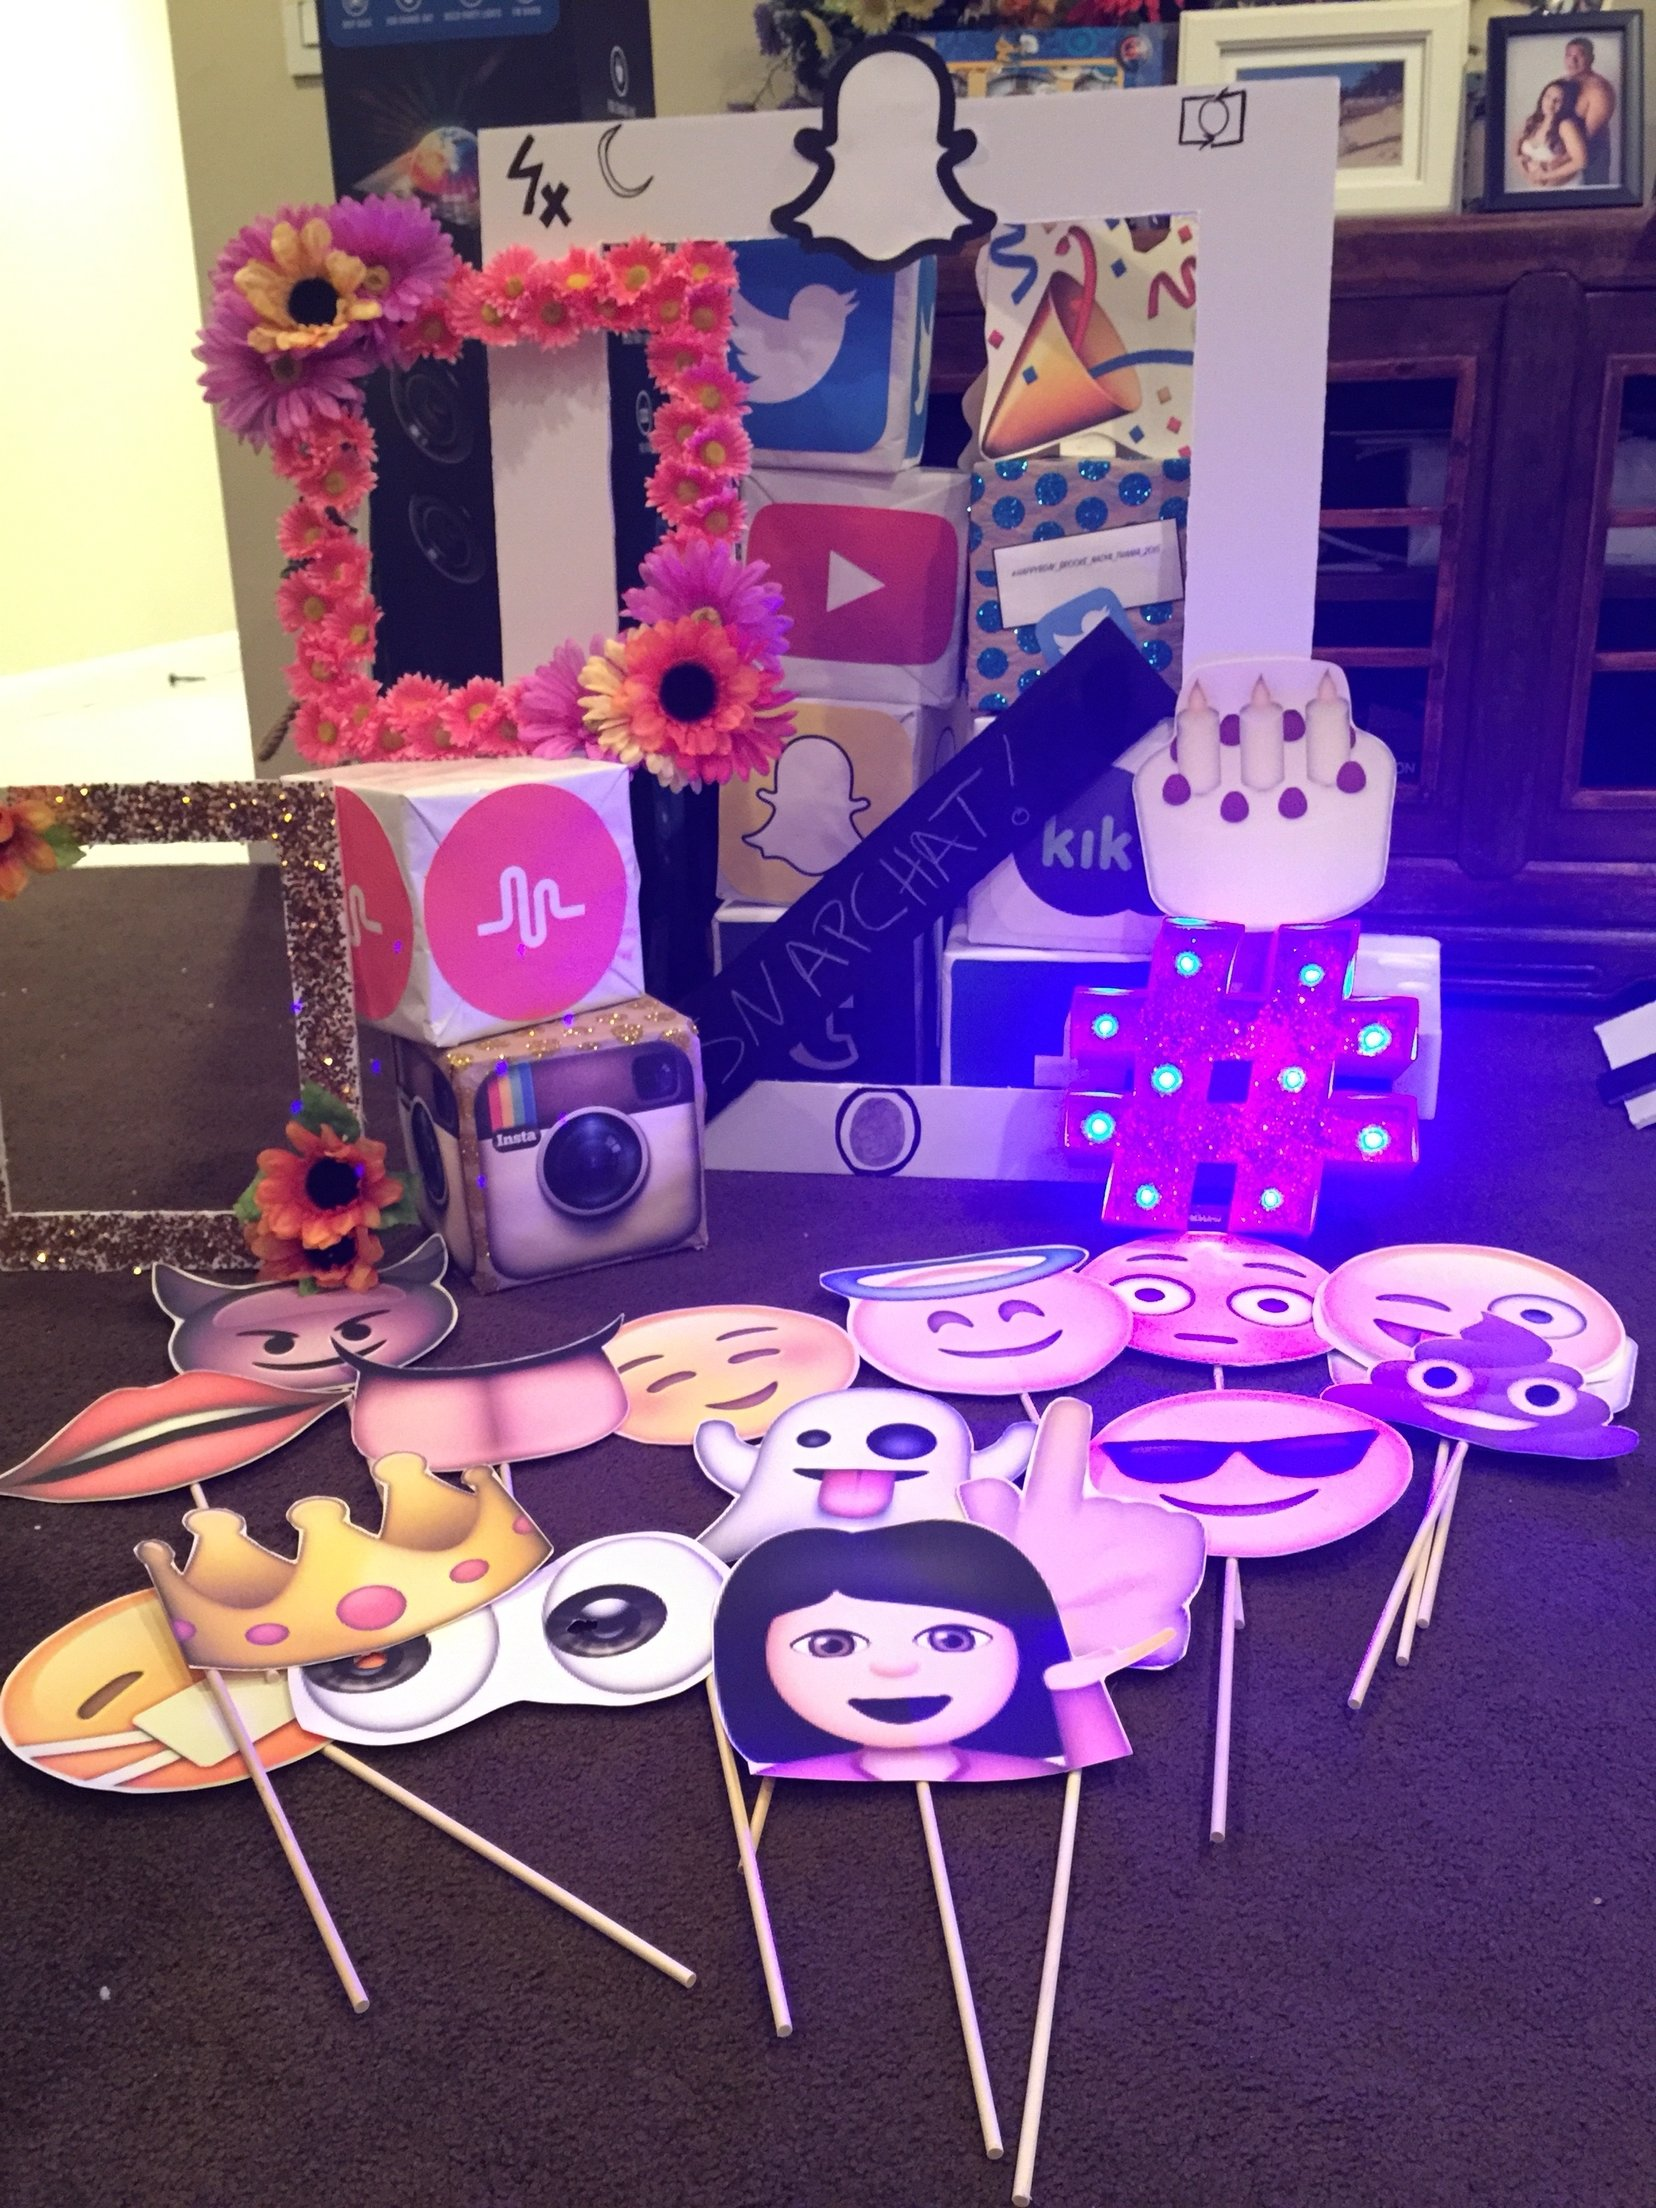 10 Awesome 13Th Birthday Ideas For Girls social media party props i made social media party pinterest 4 2021